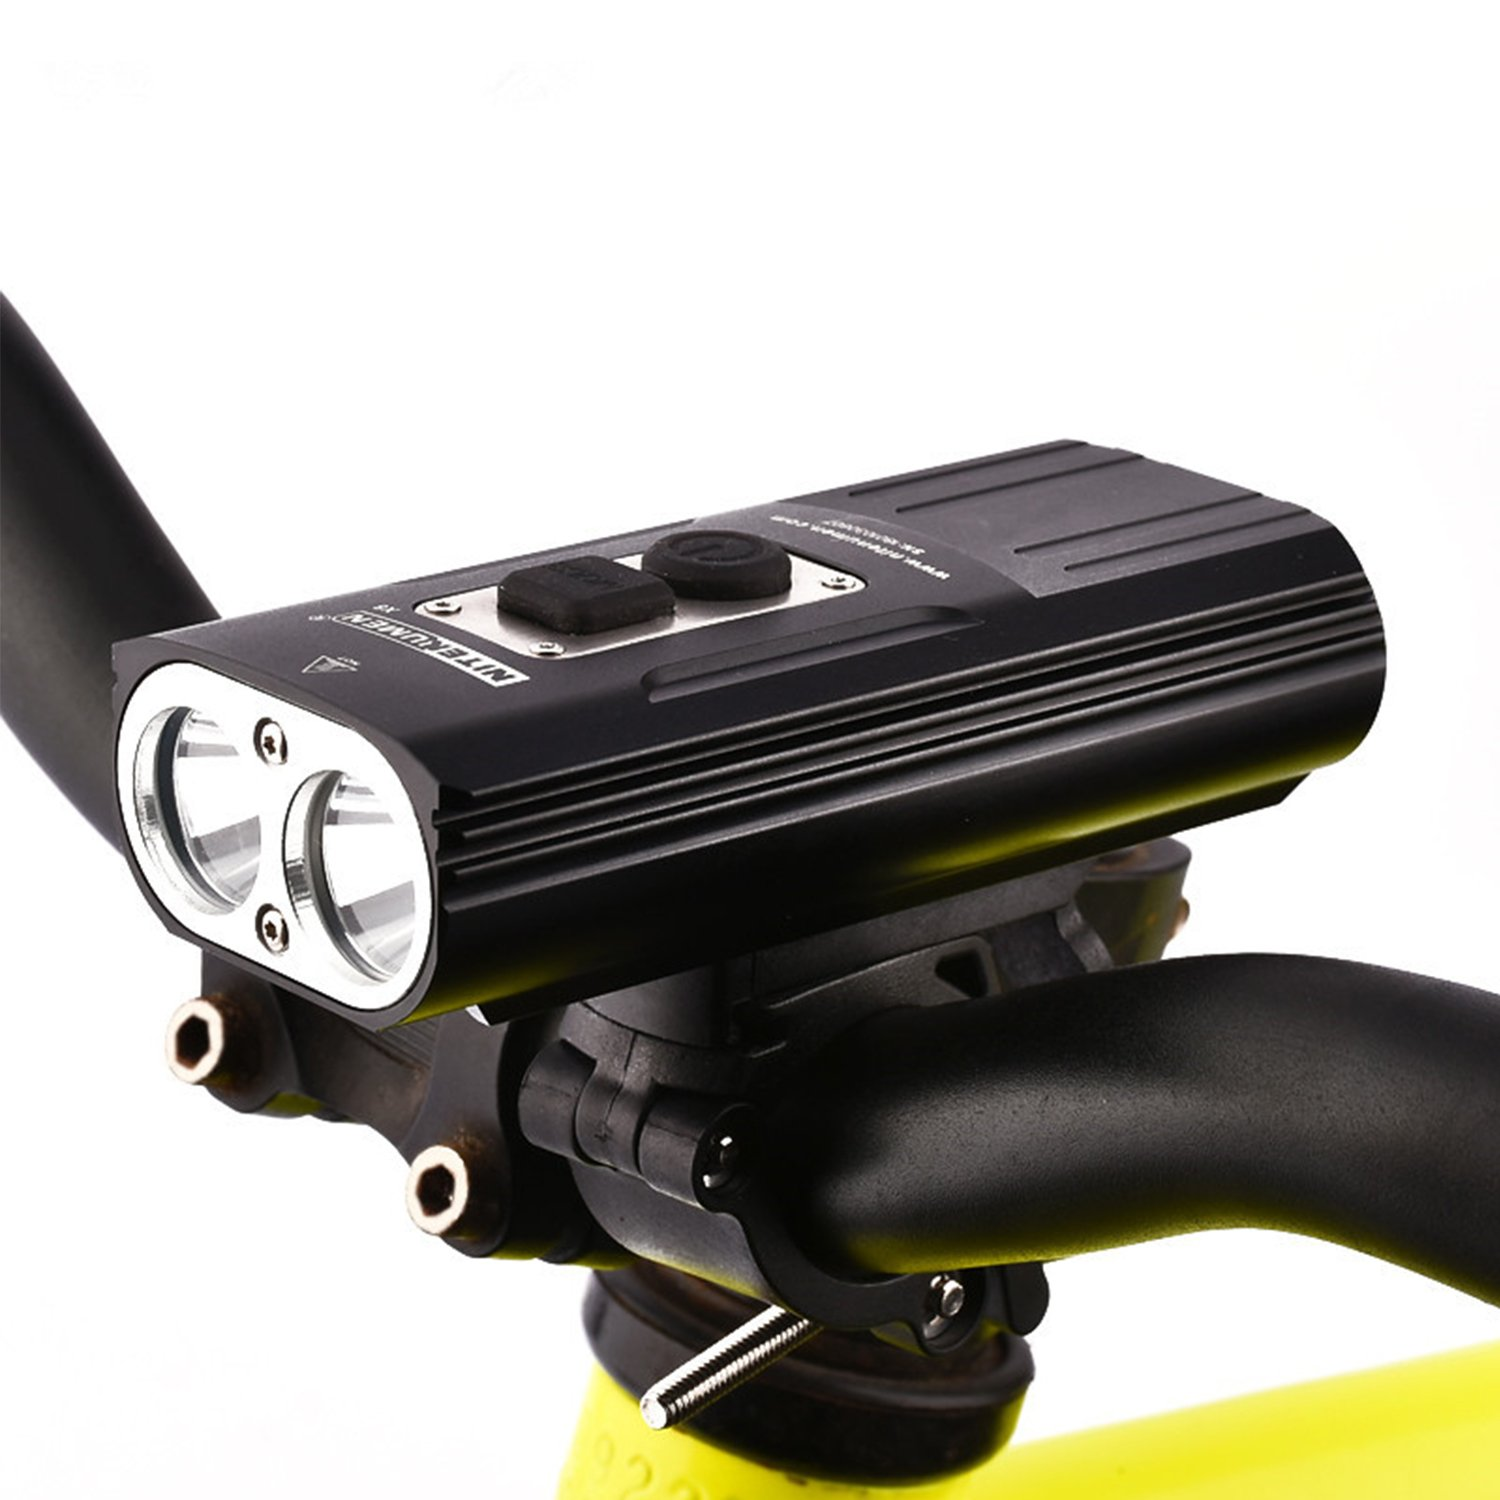 NITENUMEN USB Rechargeable LED Bike Light Max 1800 Lumens Bicycle Headlight 6 Modes Waterproof, Easy to Install for Kids Men Women Road Cycling Safety Commuter Flashlight